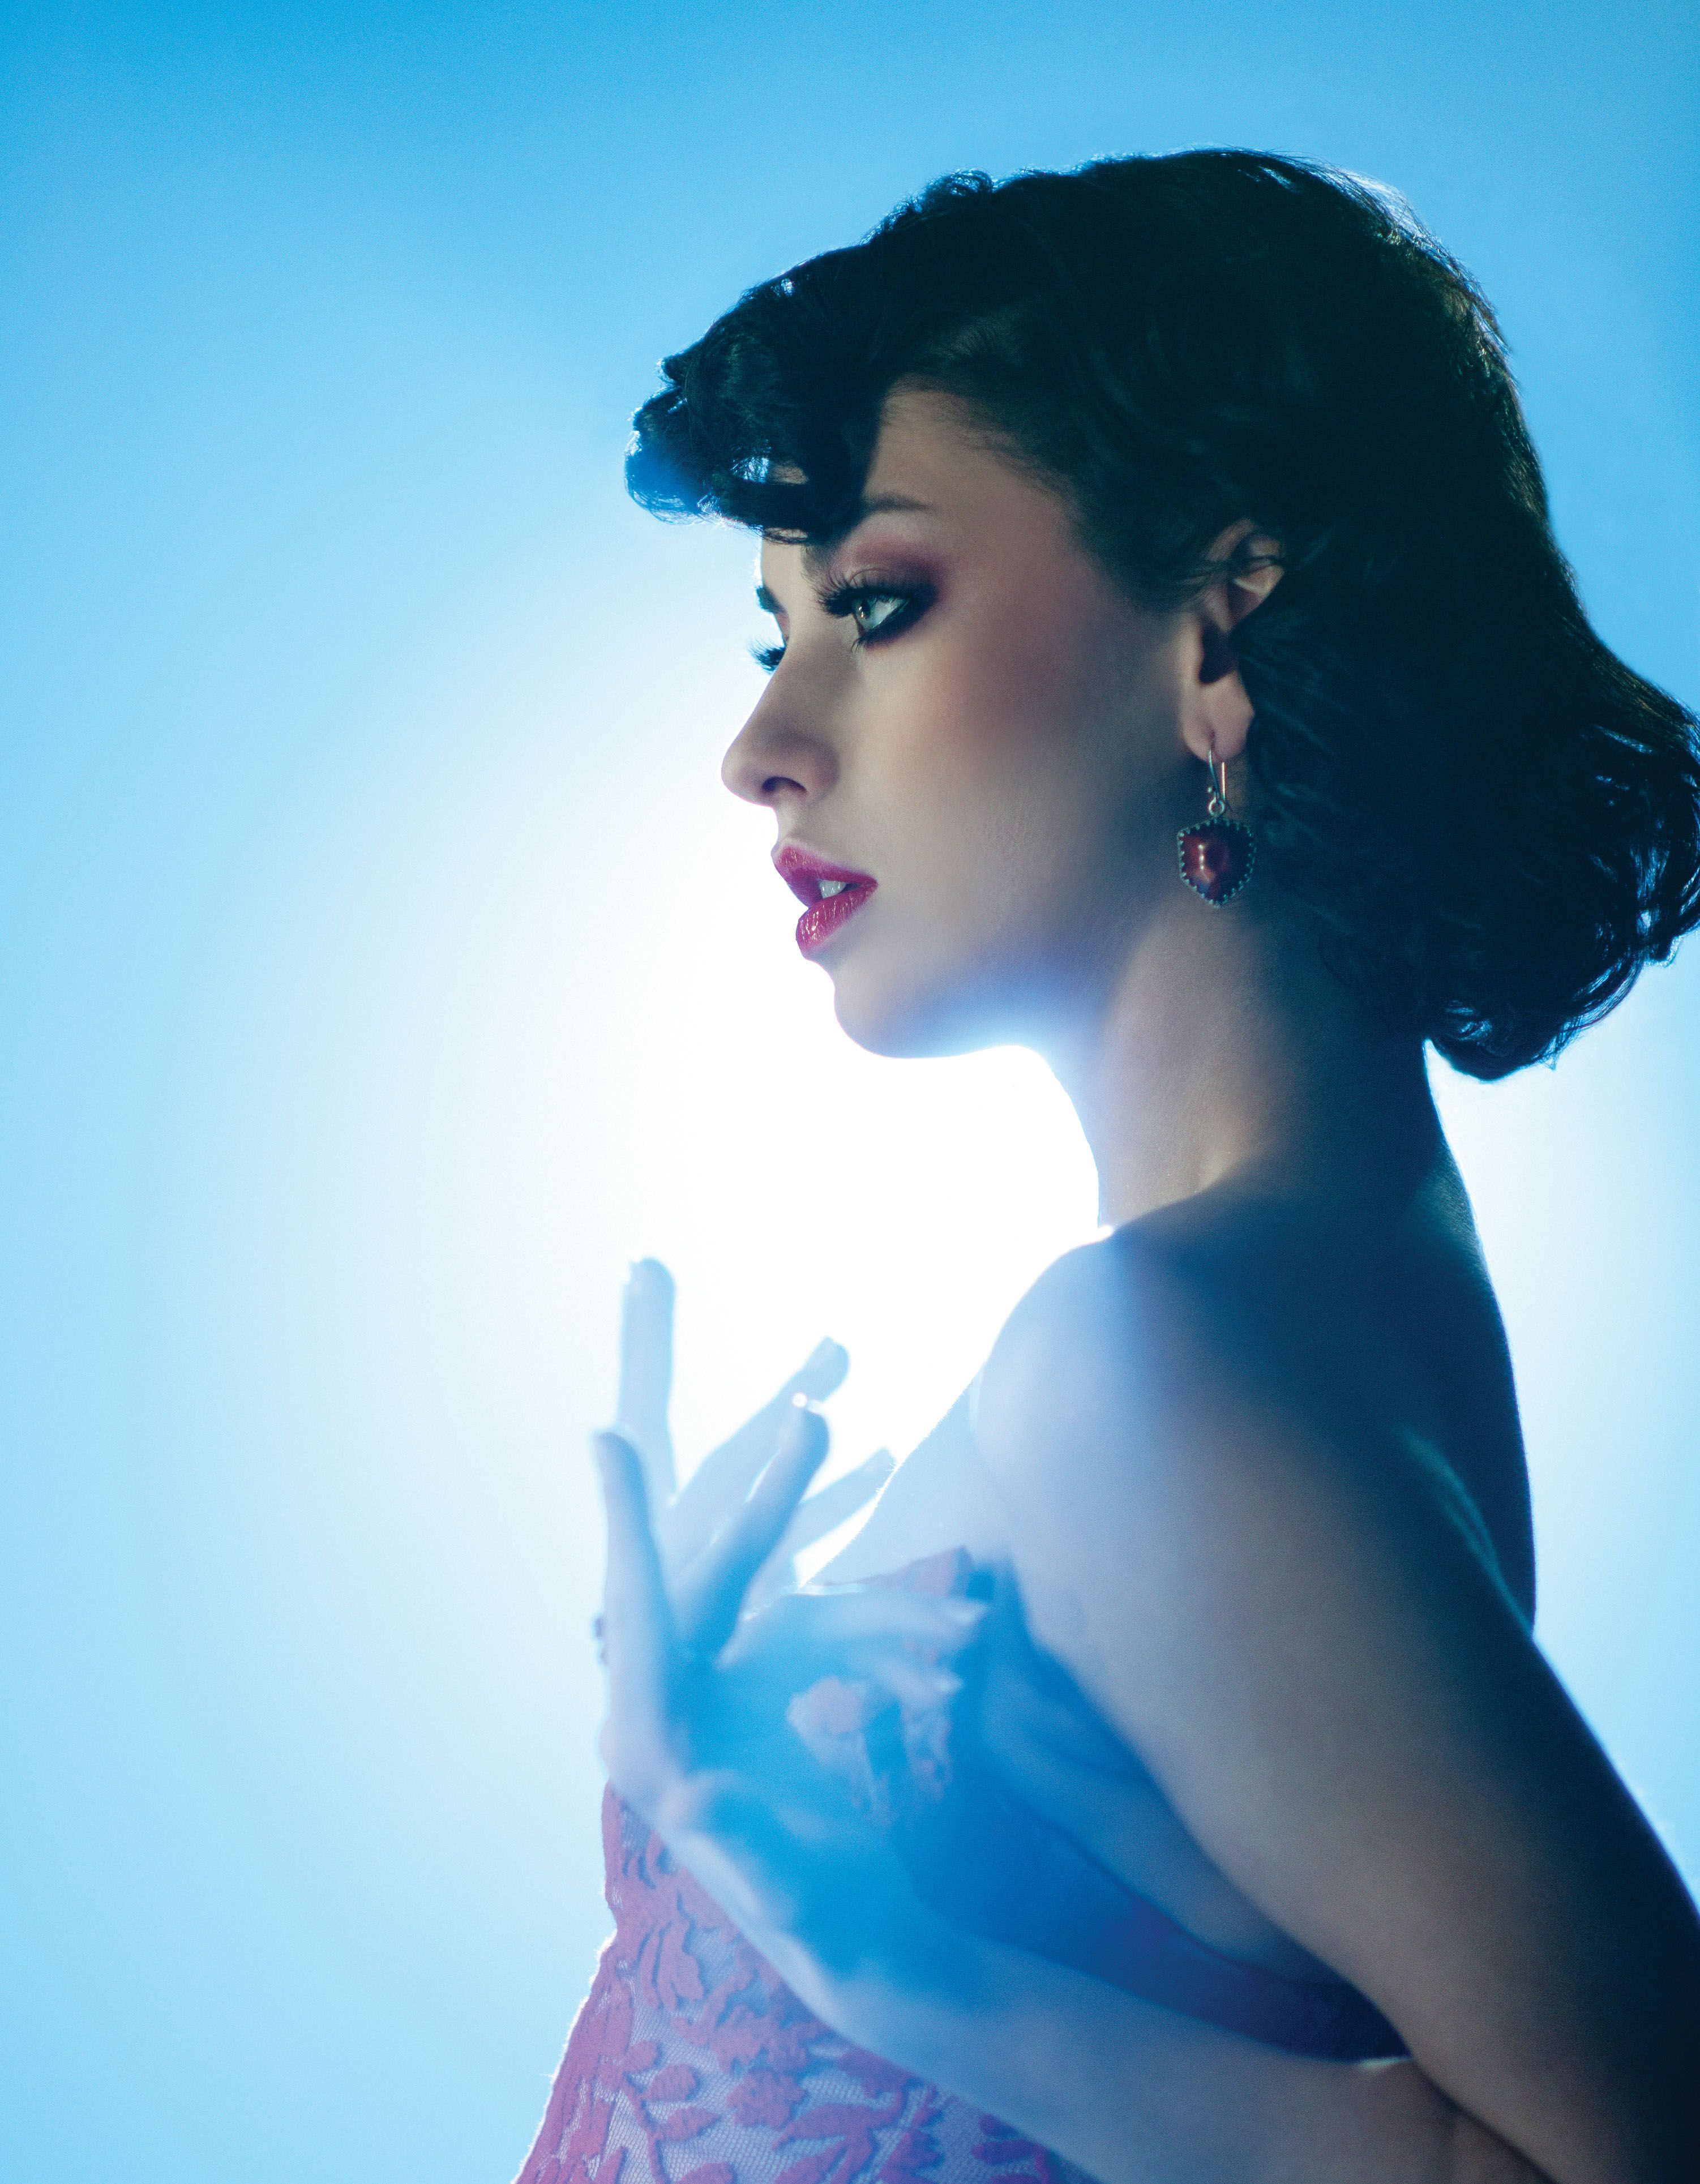 Kimbra, singer. She isn't much older than me and she is so ...